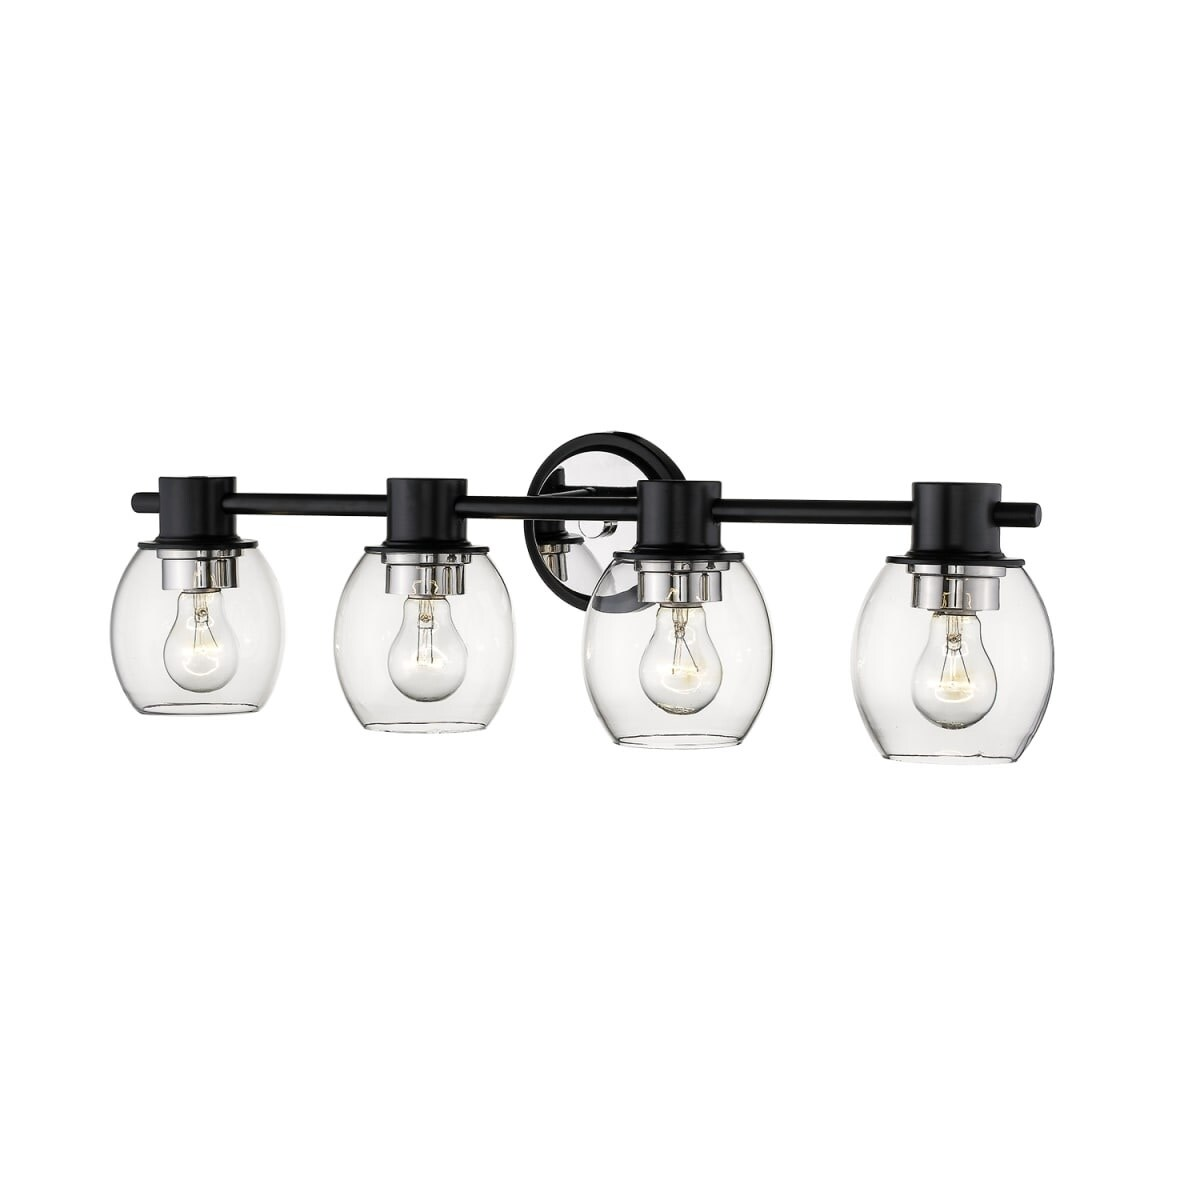 Millennium Lighting 3554 4 Light 32 Wide Bathroom Vanity Light Matte Black Polished Nickel Overstock 27382953